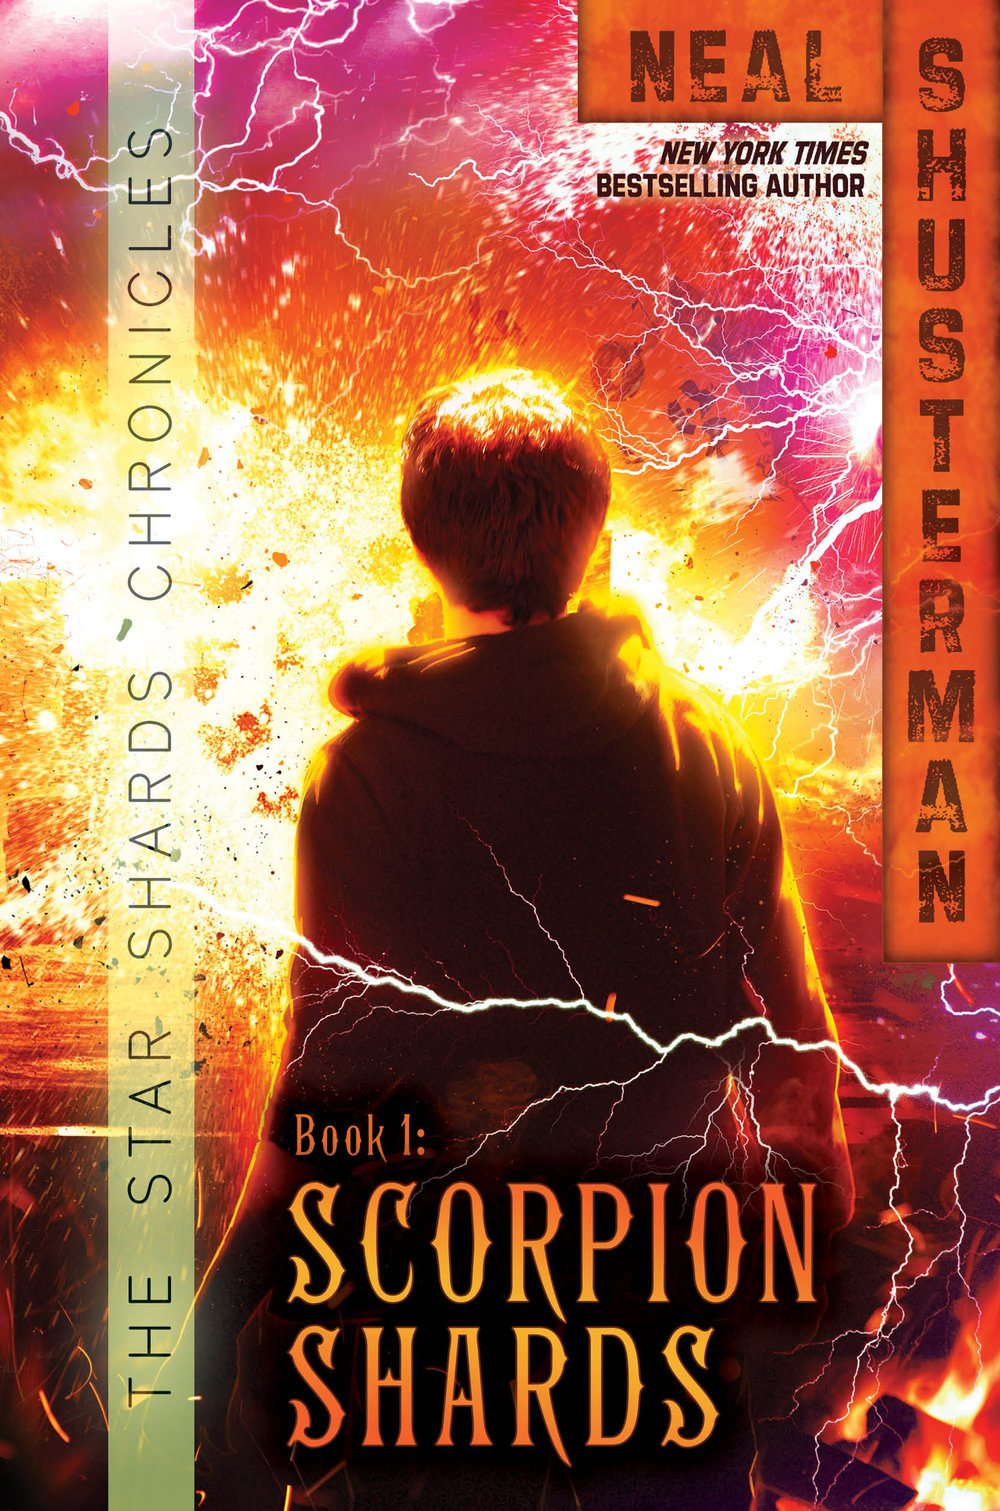 First up we have the first book in the series, Scorpion Shards.